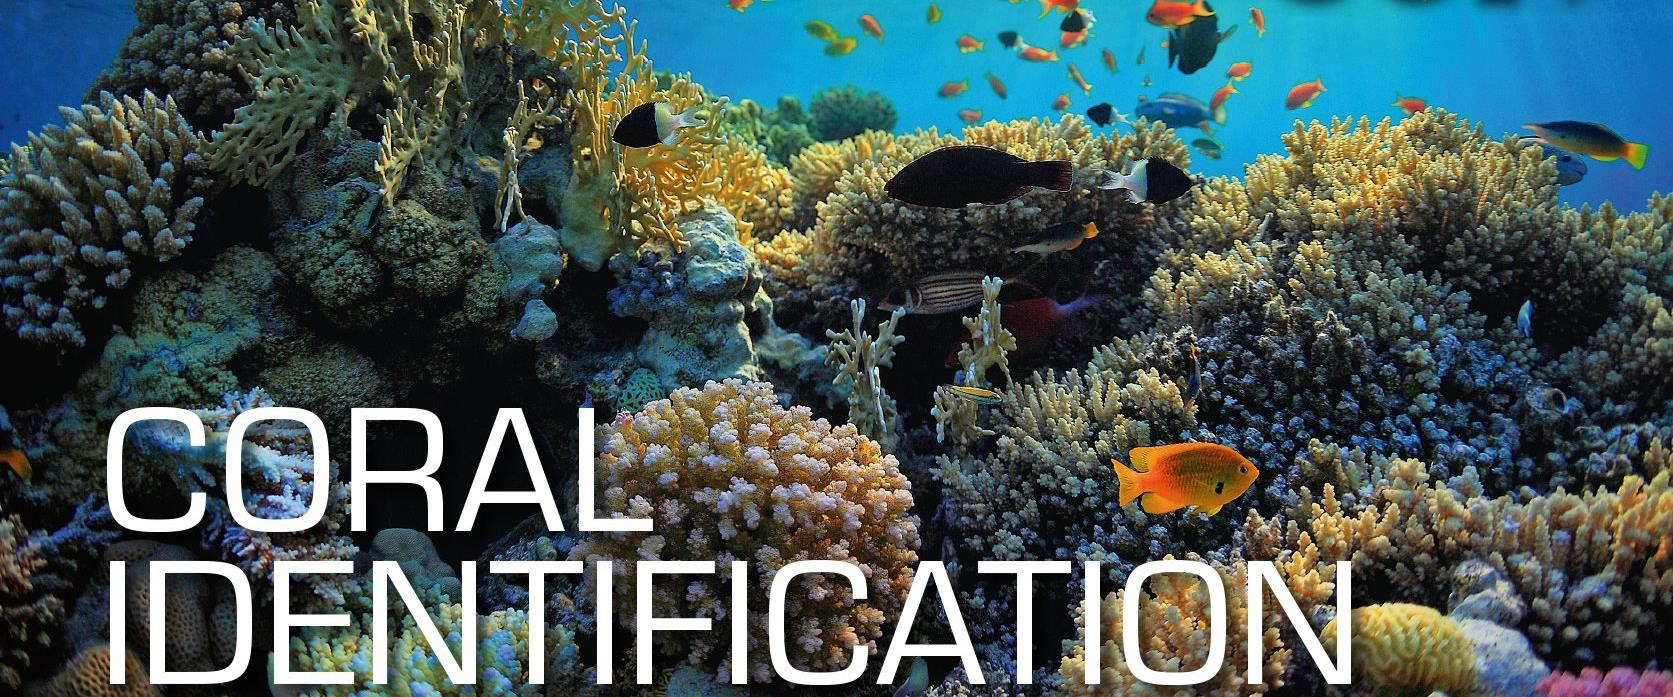 SSI Coral identitication ecology course + 2 tank SCUBA dive